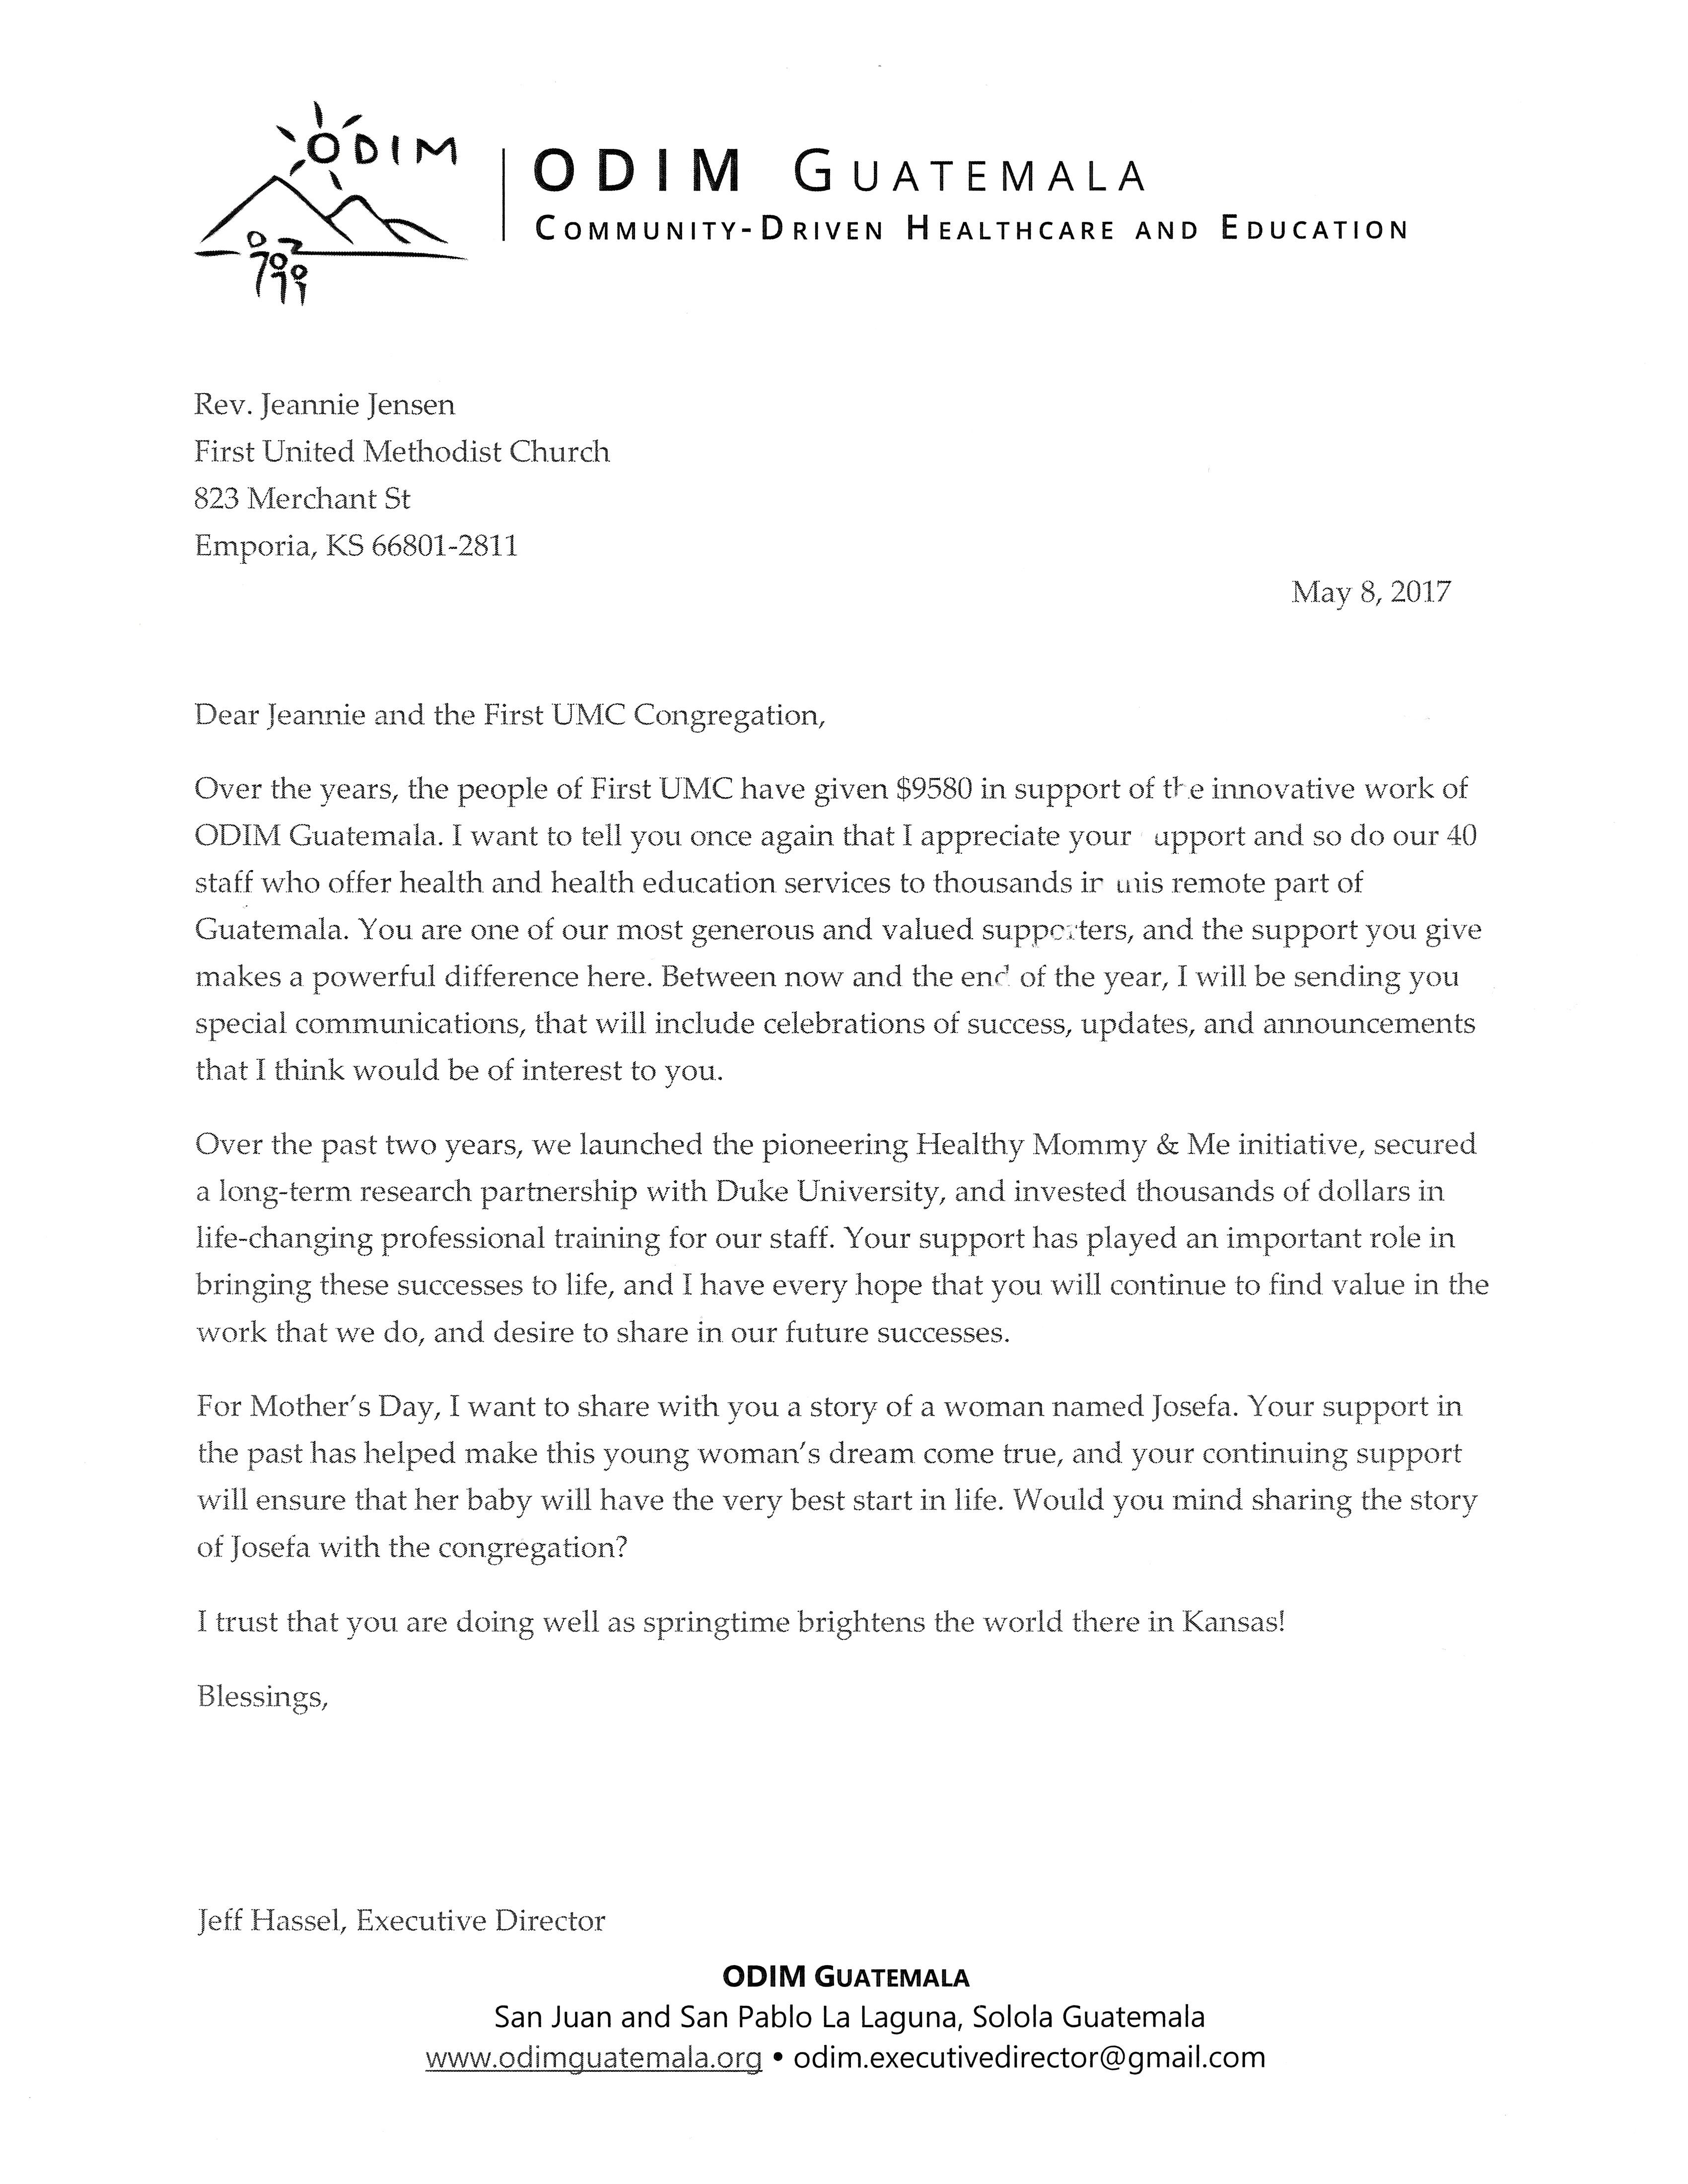 Thank You Letter From Odim First United Methodist Church